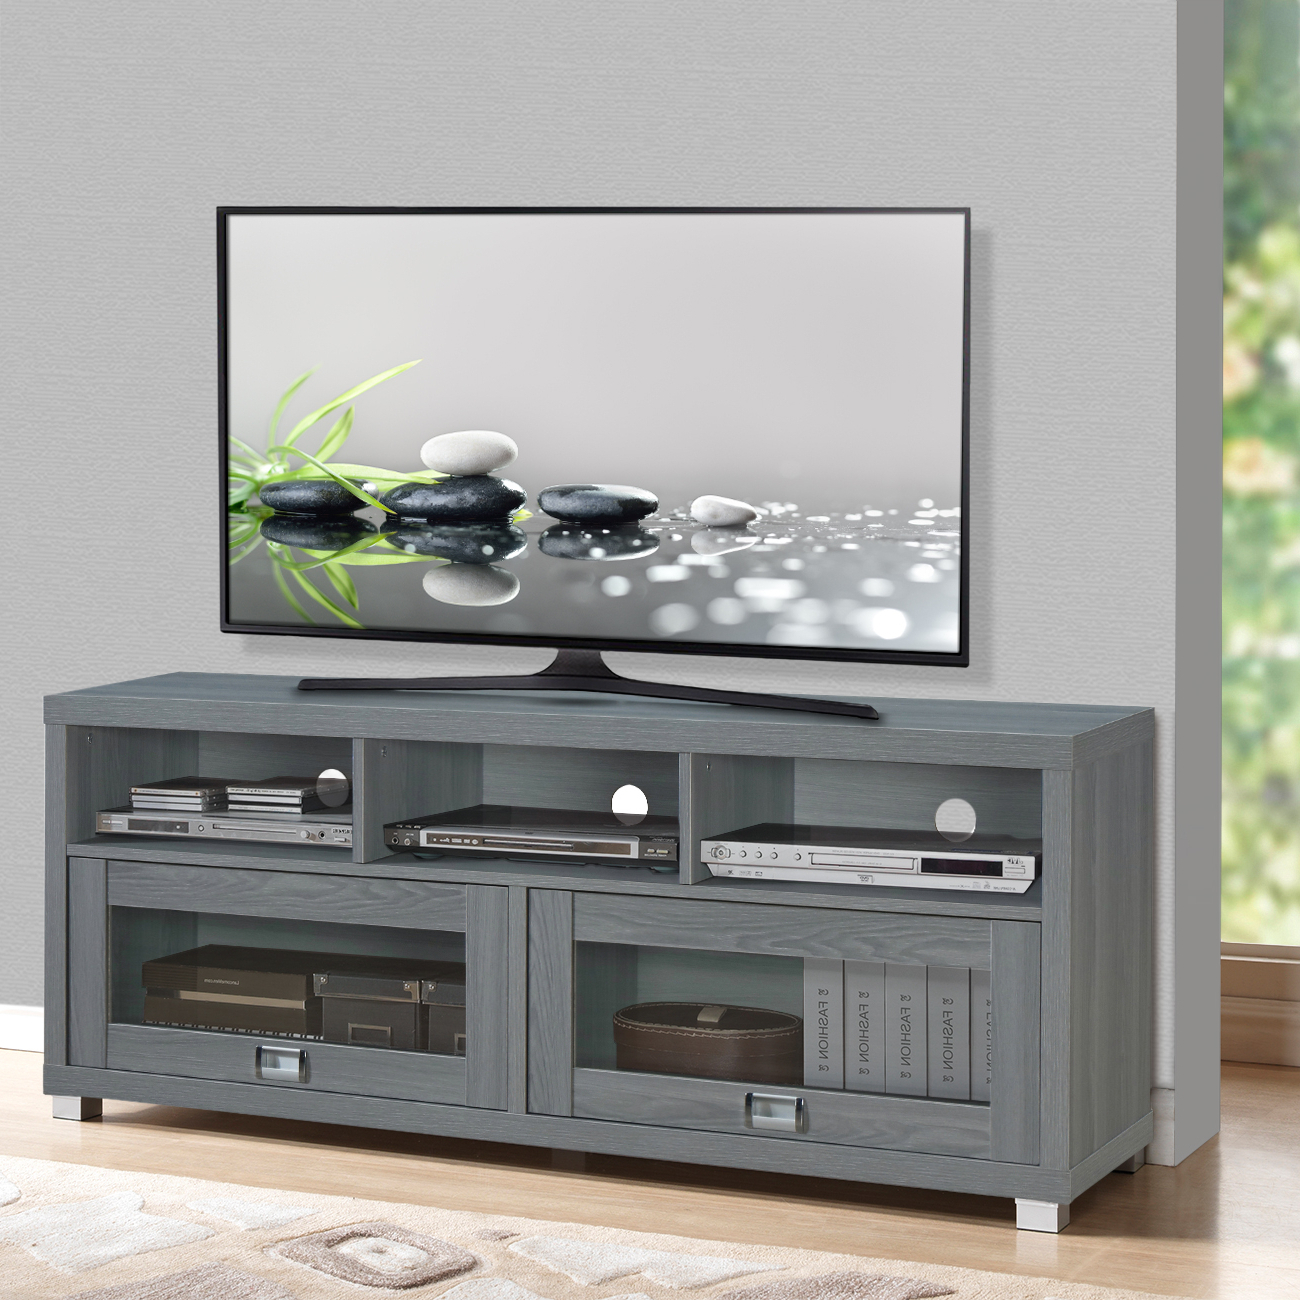 """Newest Flat Screen Tv Stand Up To 75 Inch 50 55 60 65 70 55in With Regard To Lansing Tv Stands For Tvs Up To 50"""" (View 12 of 25)"""